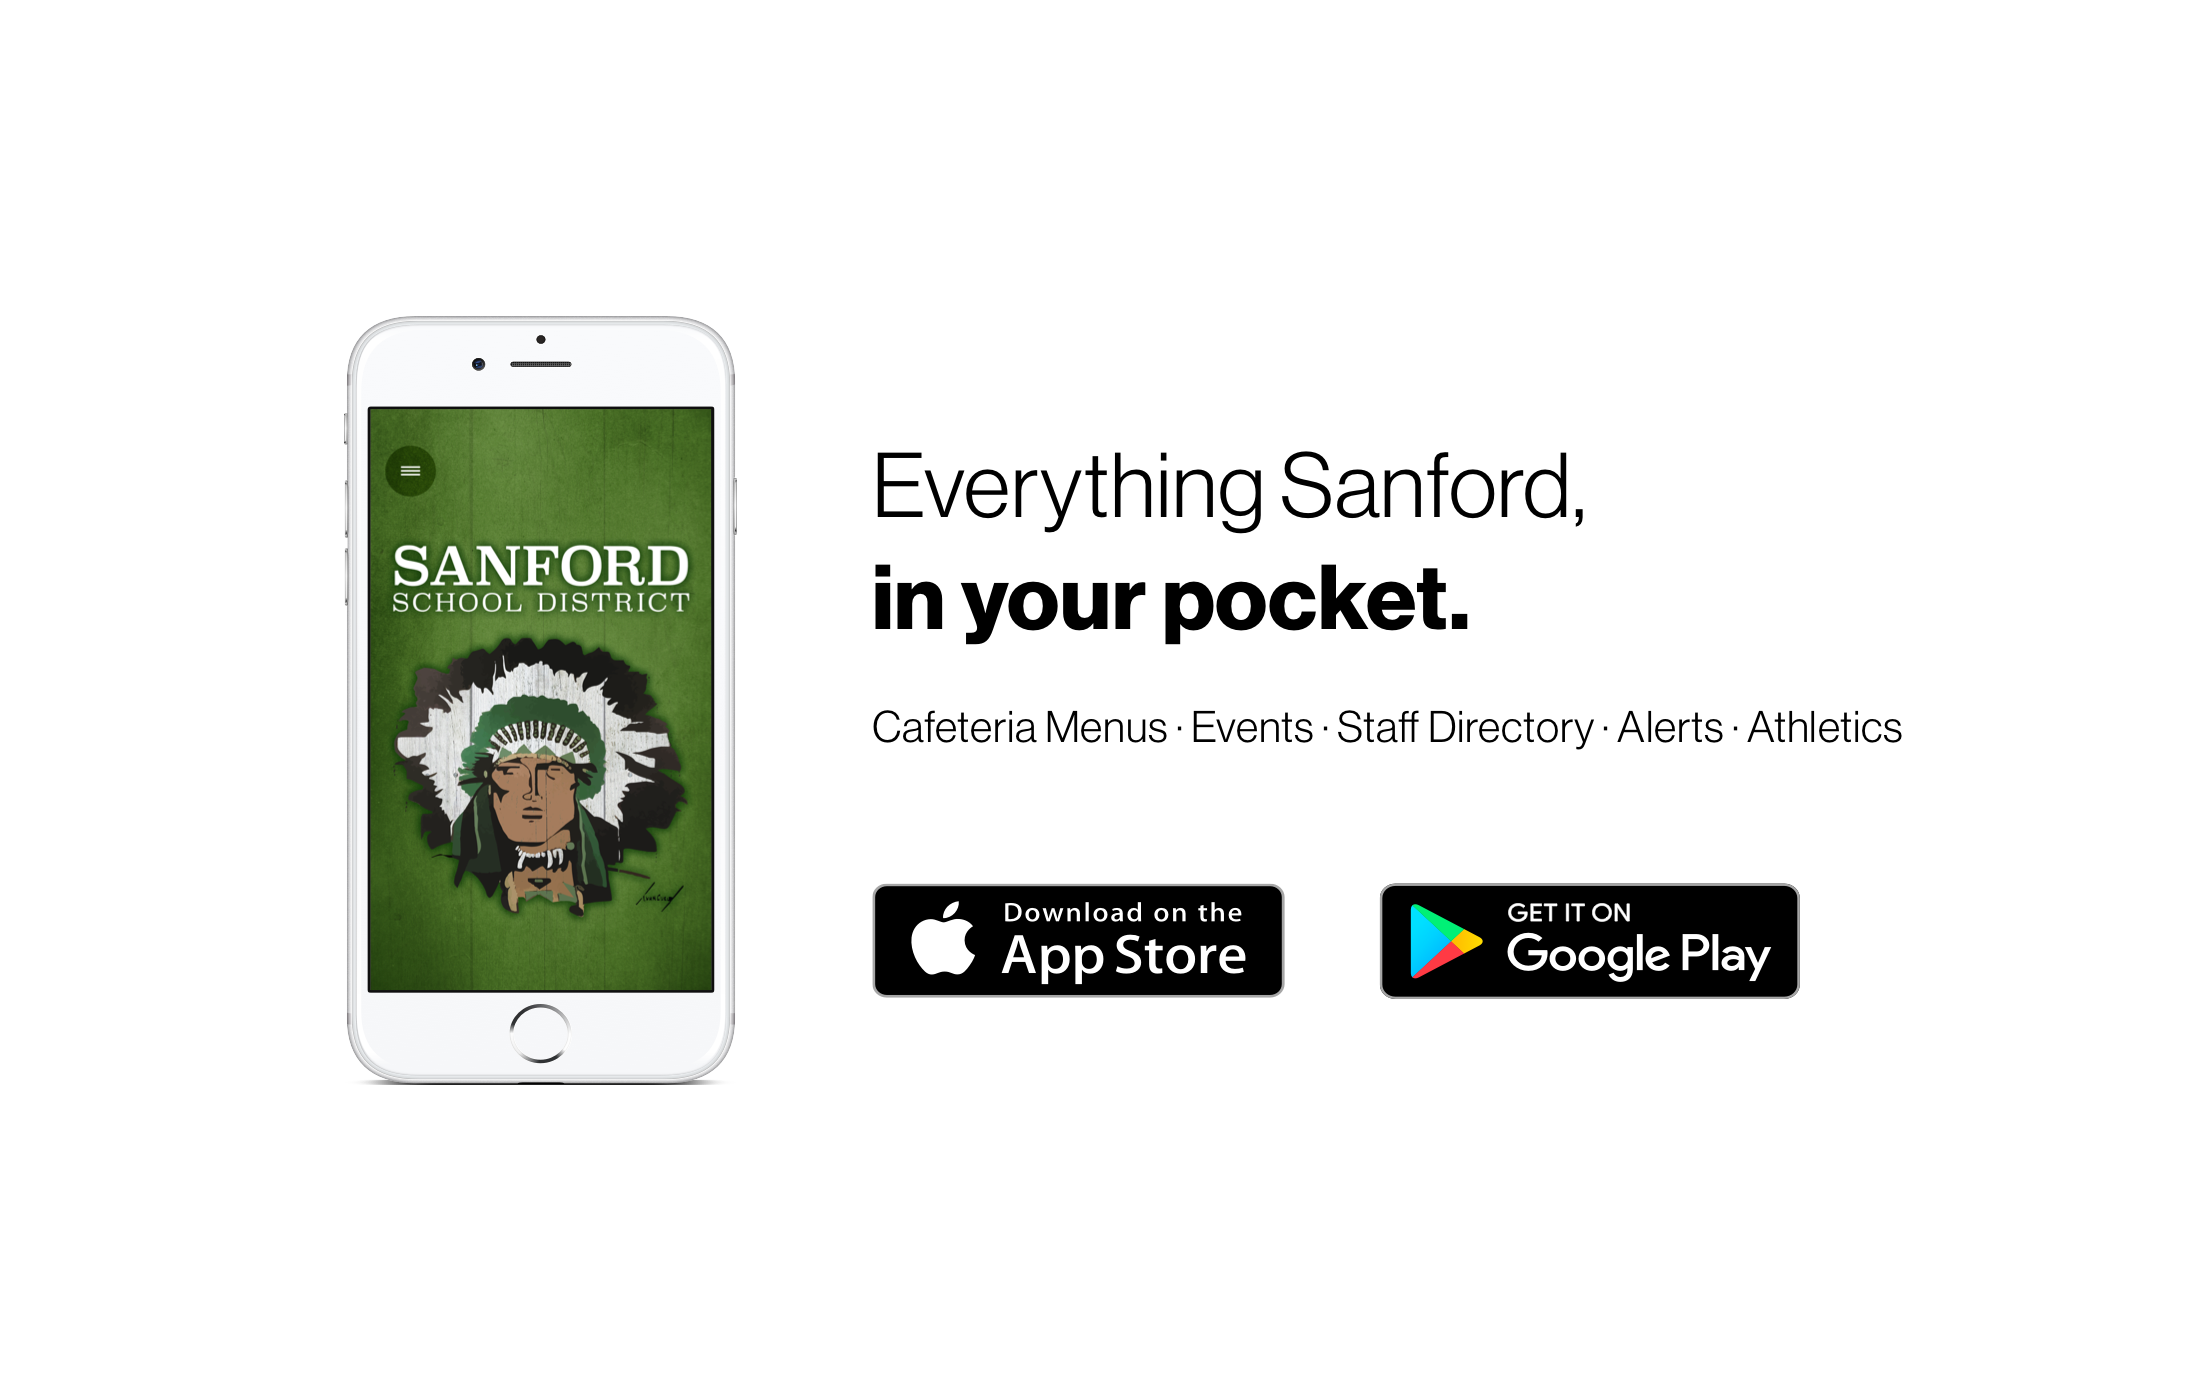 Everything Sanford, in your pocket